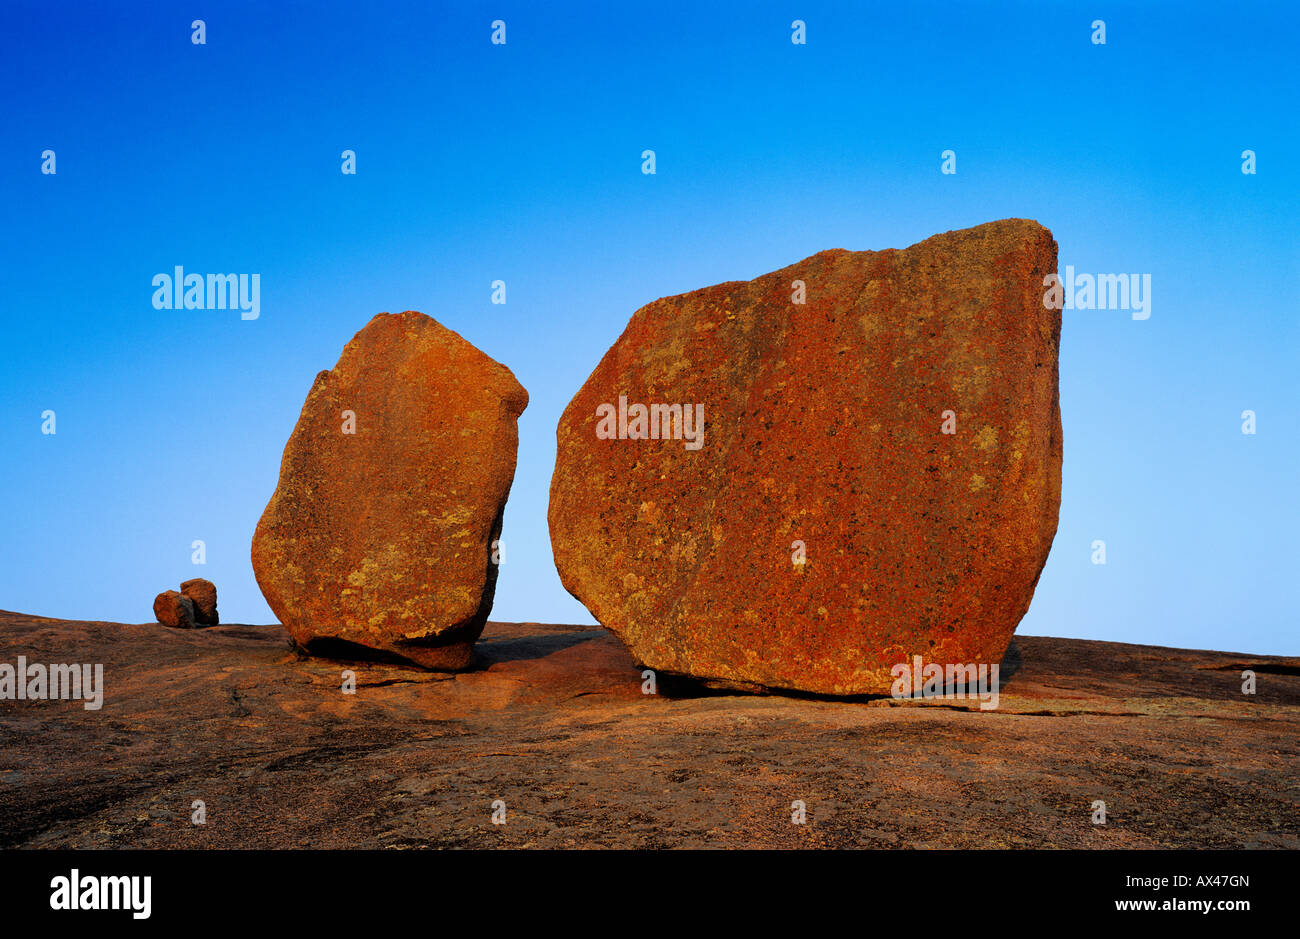 Dome with Rockformation at sunset Enchanted Rock State Natural Area Fredericksburg Texas USA - Stock Image